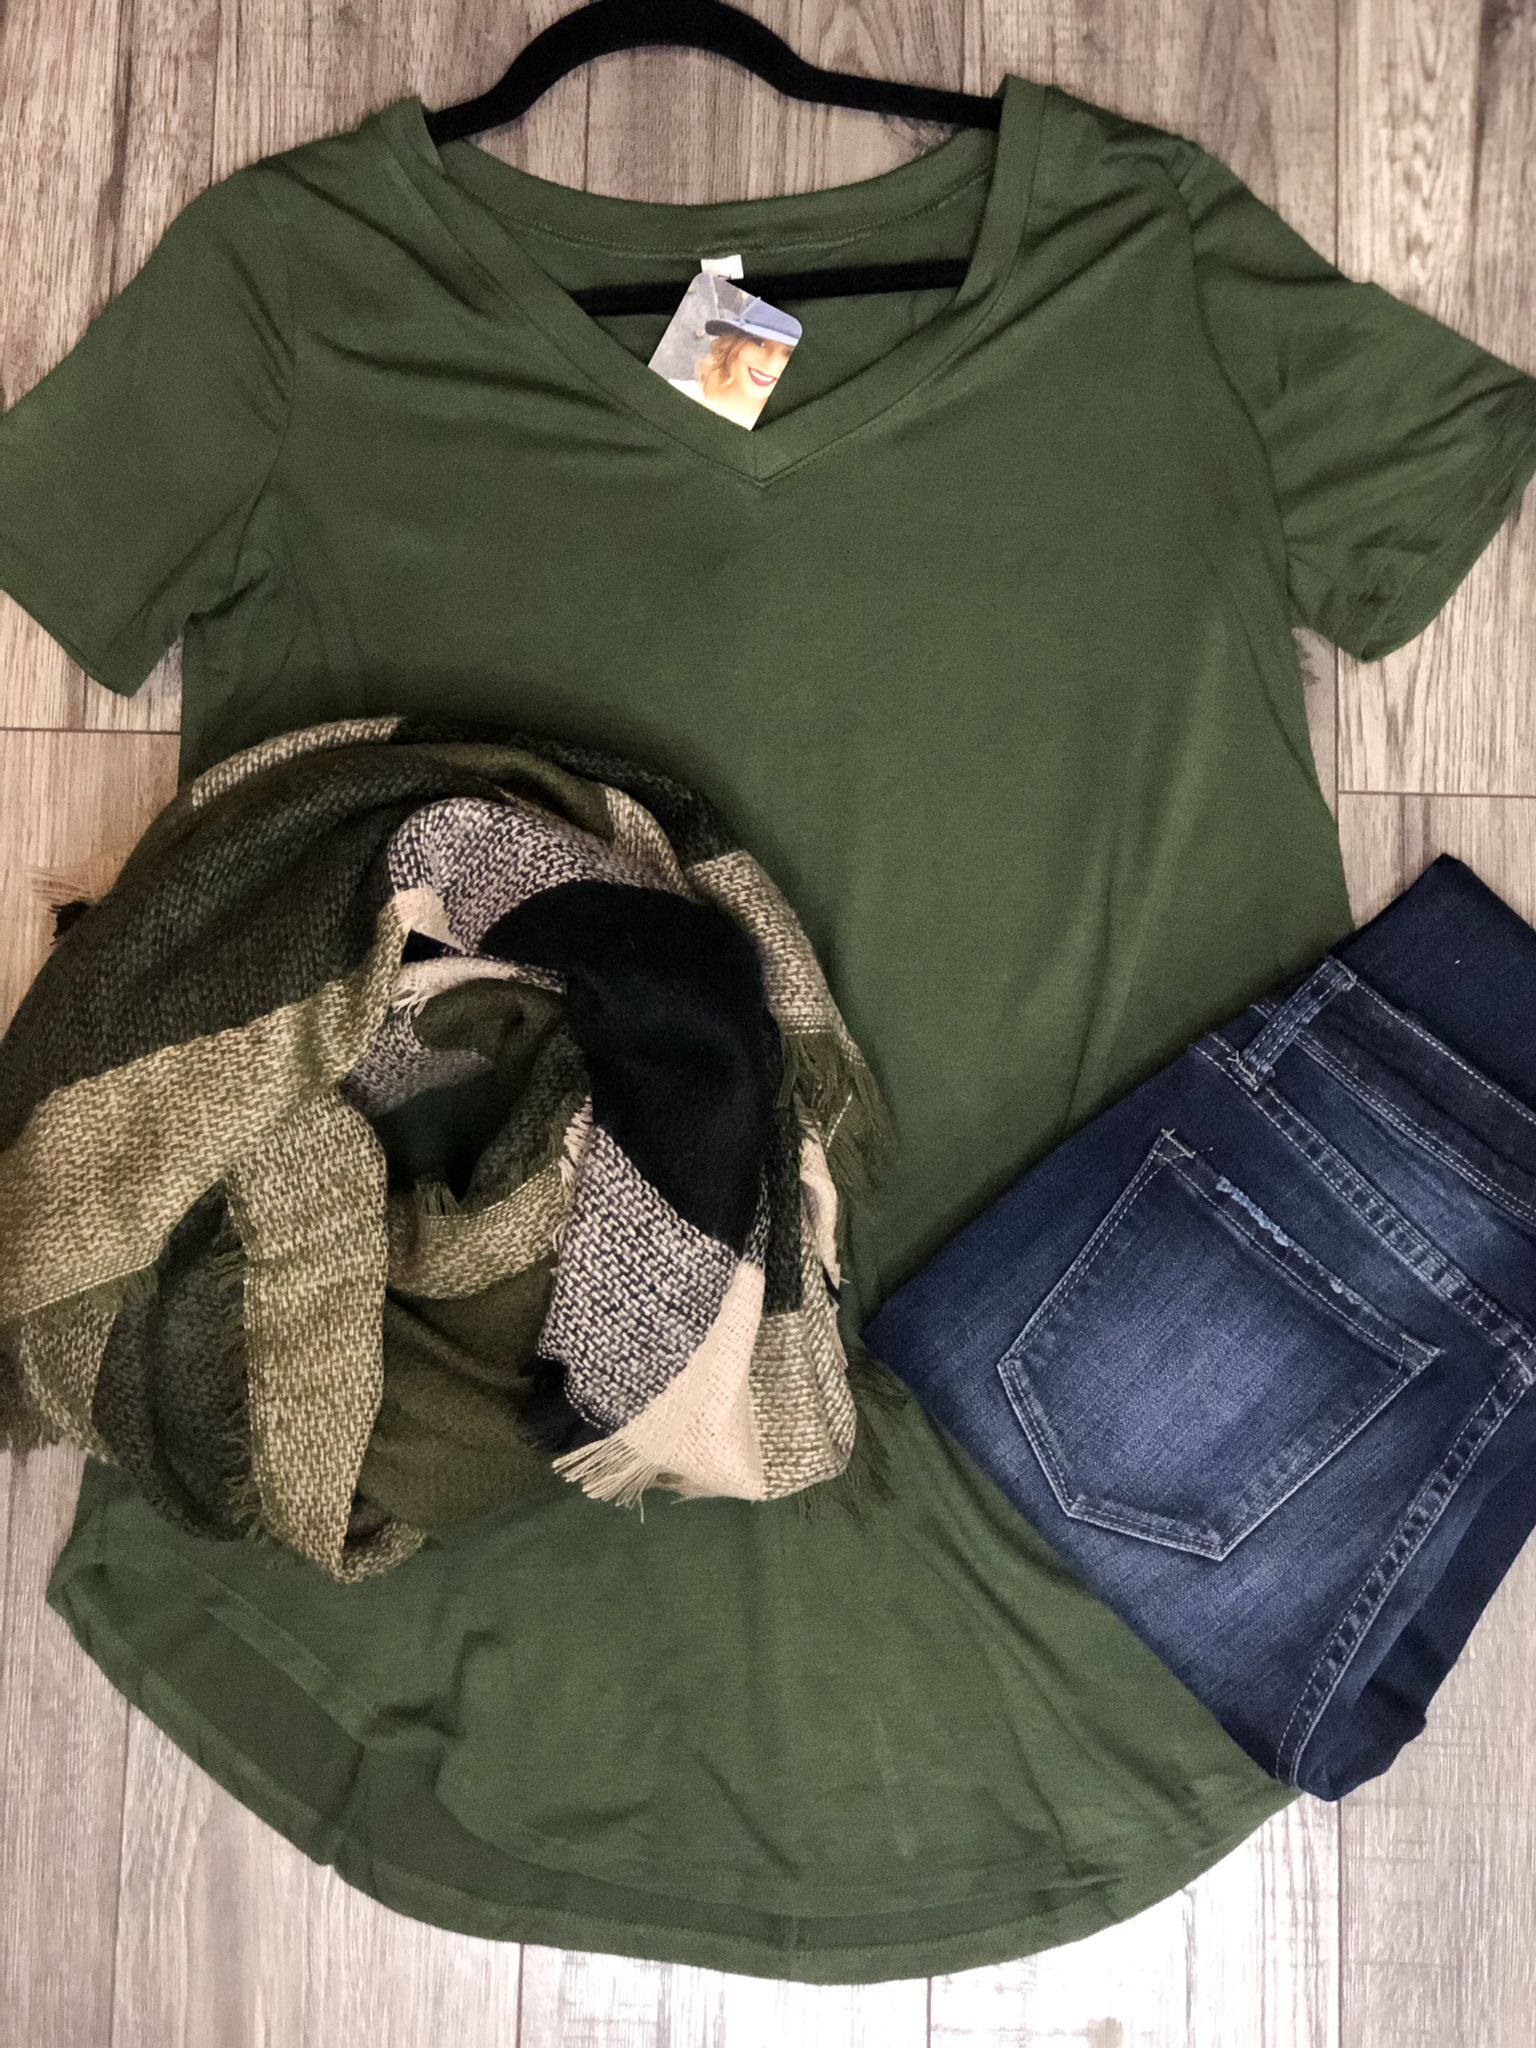 Basic V Neck Tee - Hunter Green 99999981293